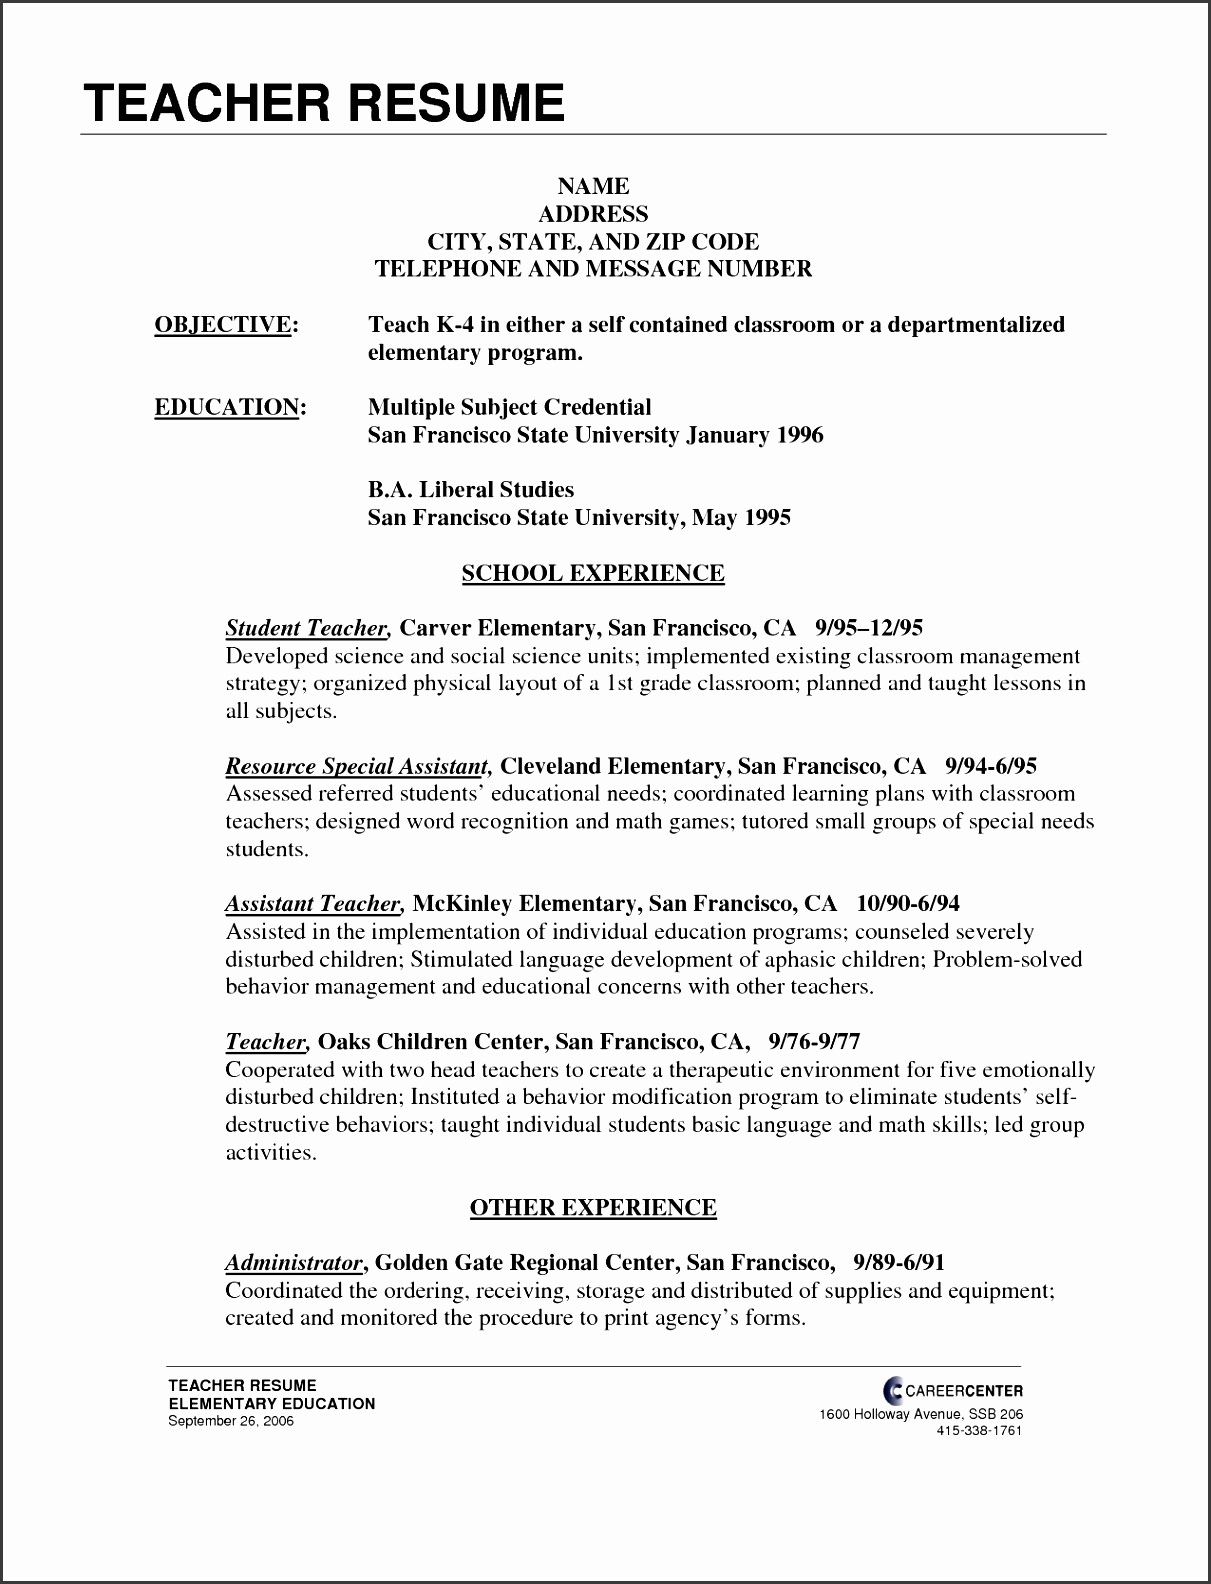 cover letter for teaching job with no experience letter idea 2018